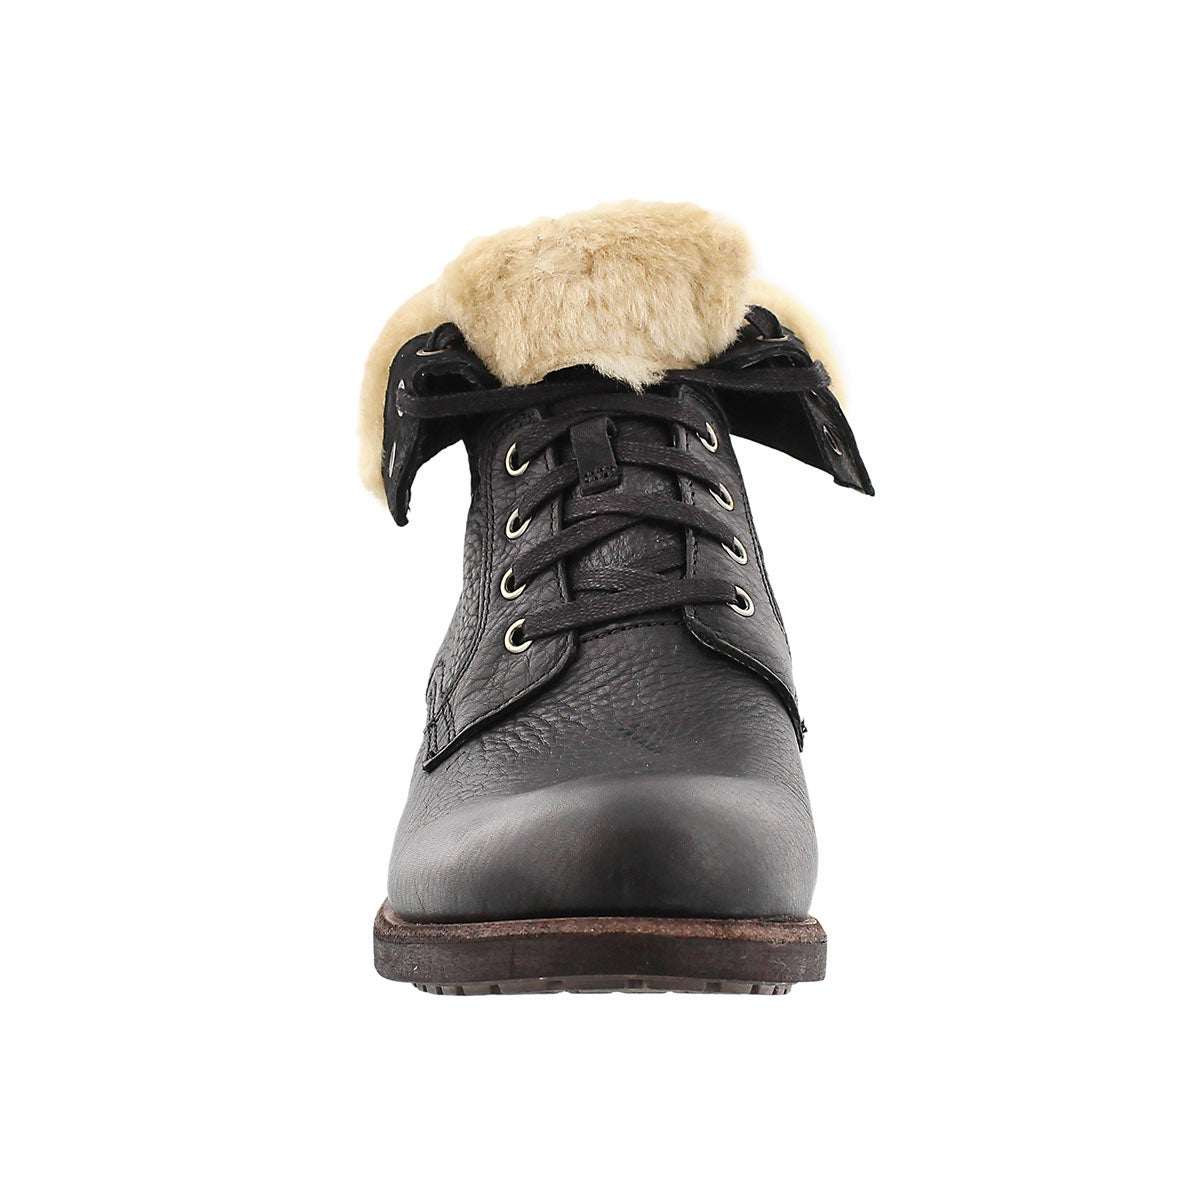 Mns Larus blk lthr casual fold down boot